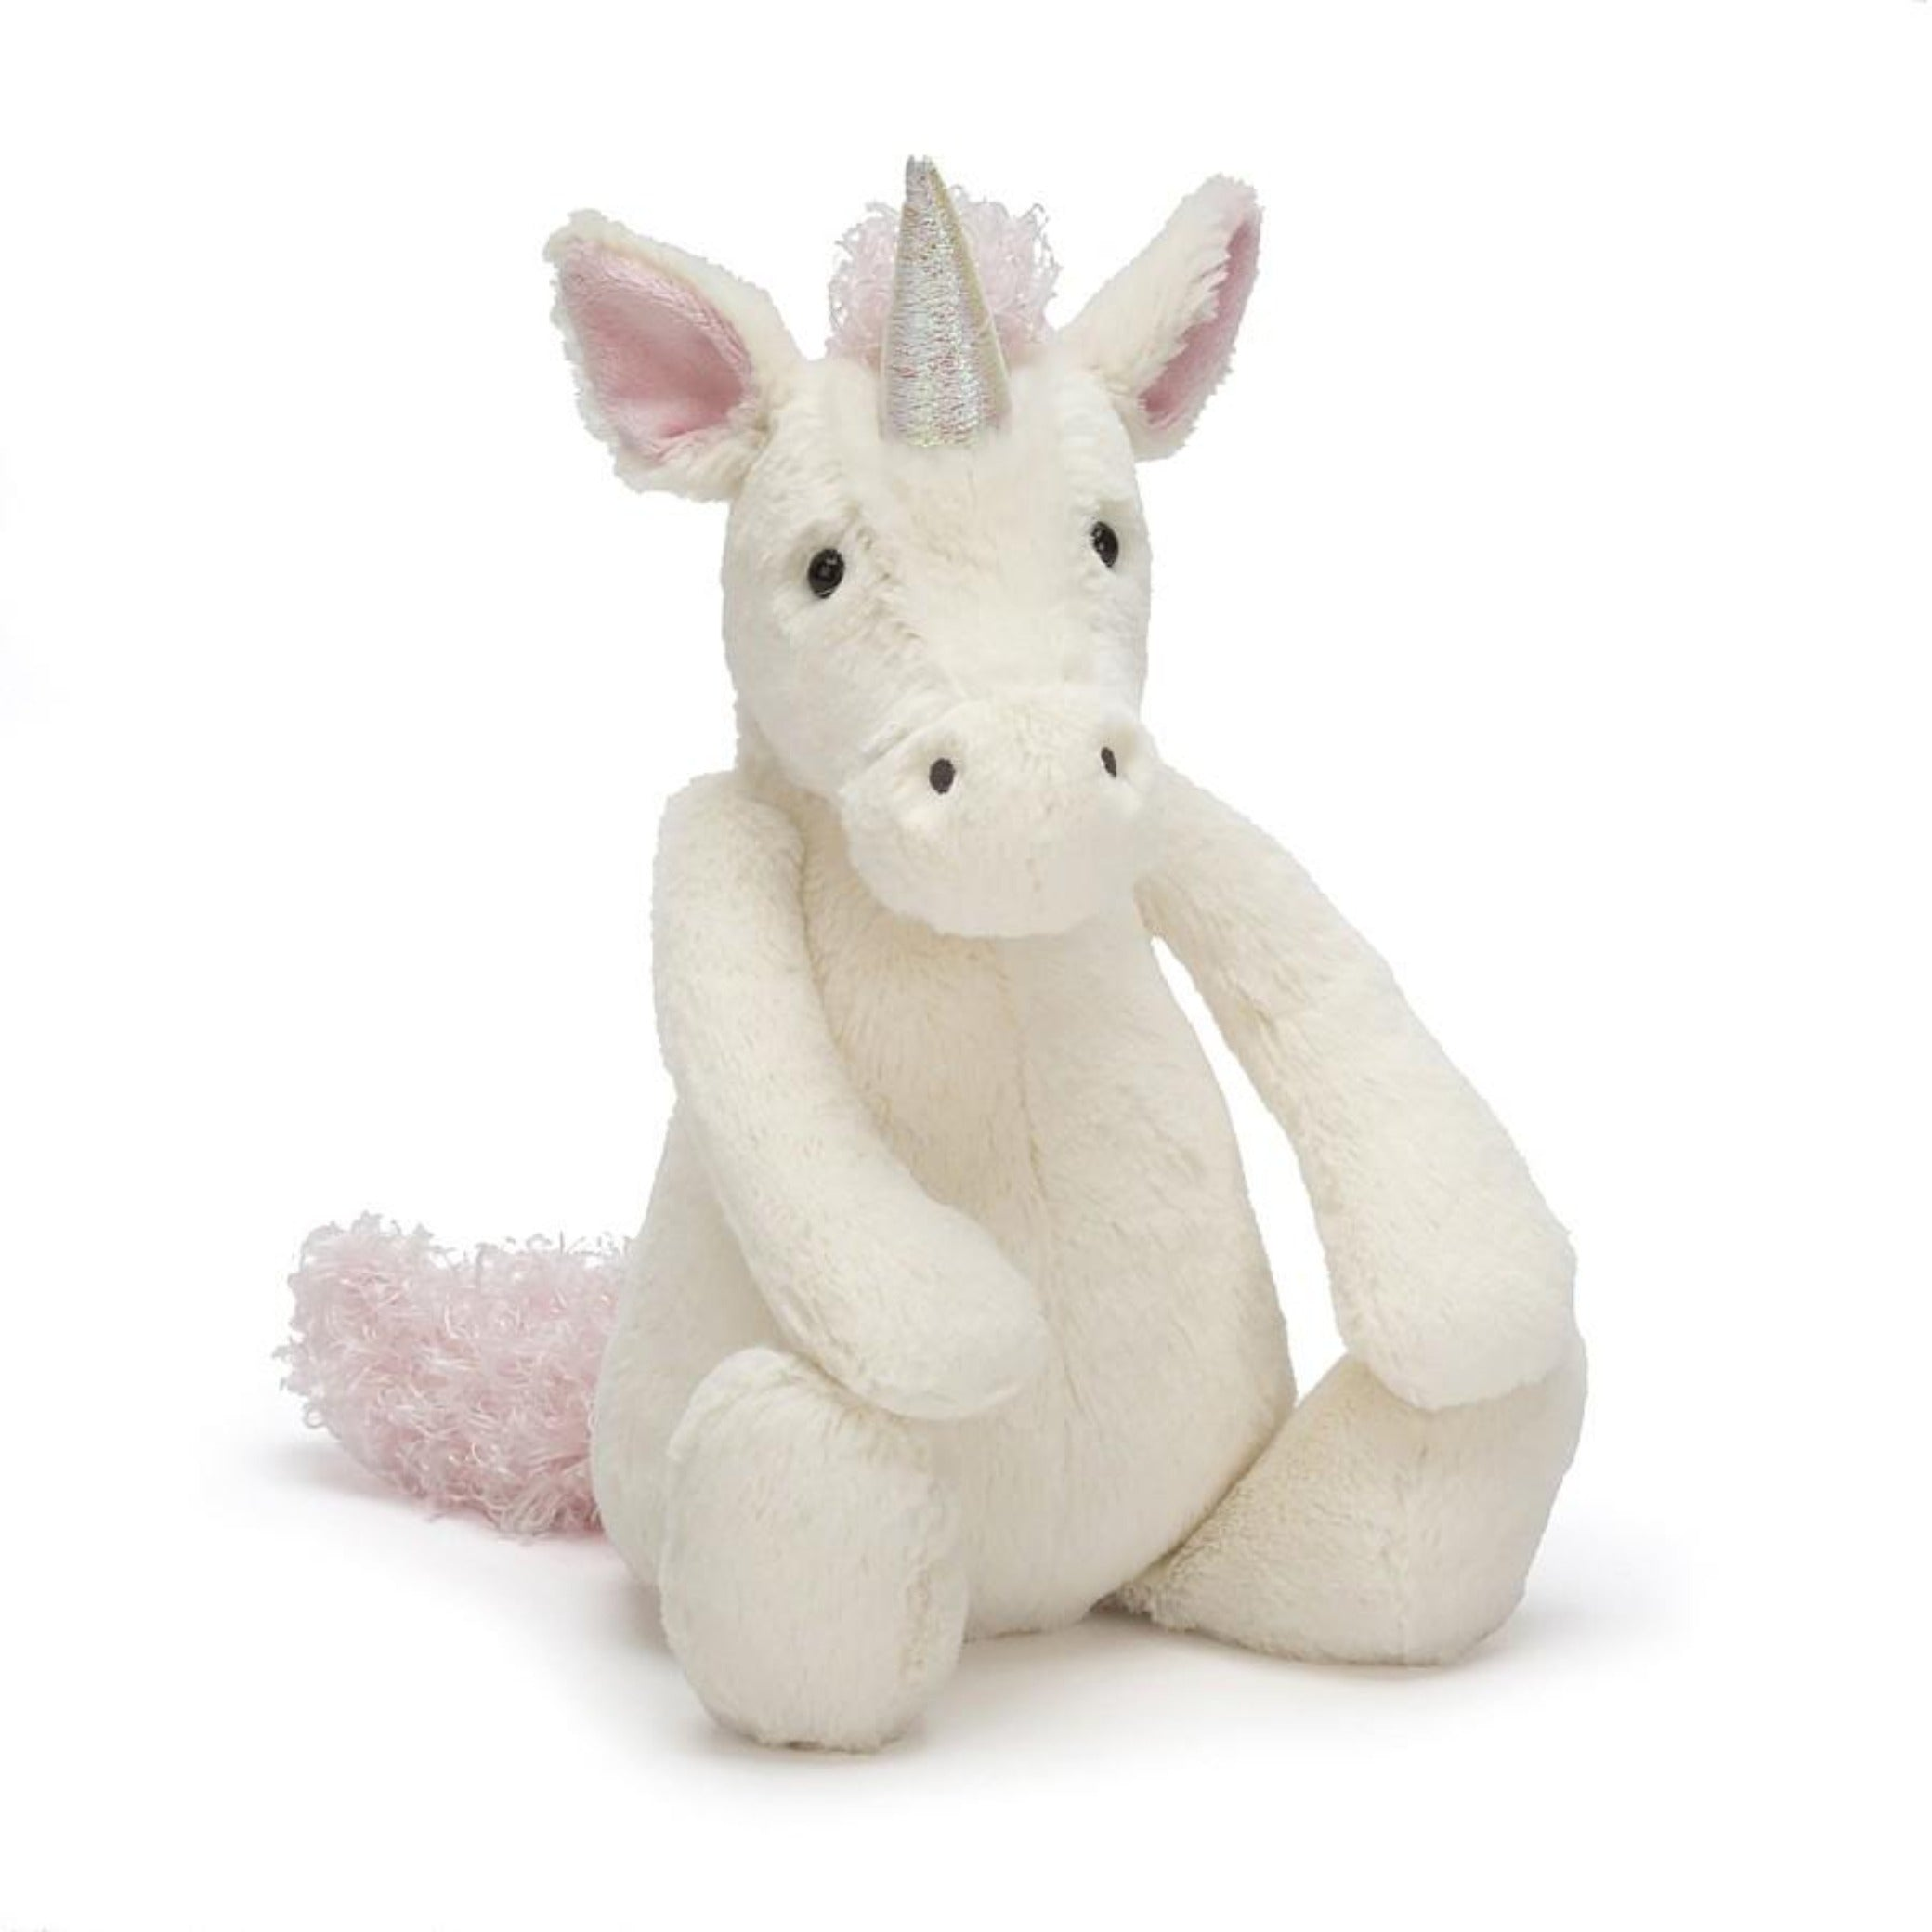 JellyCat white medium plush unicorn toy